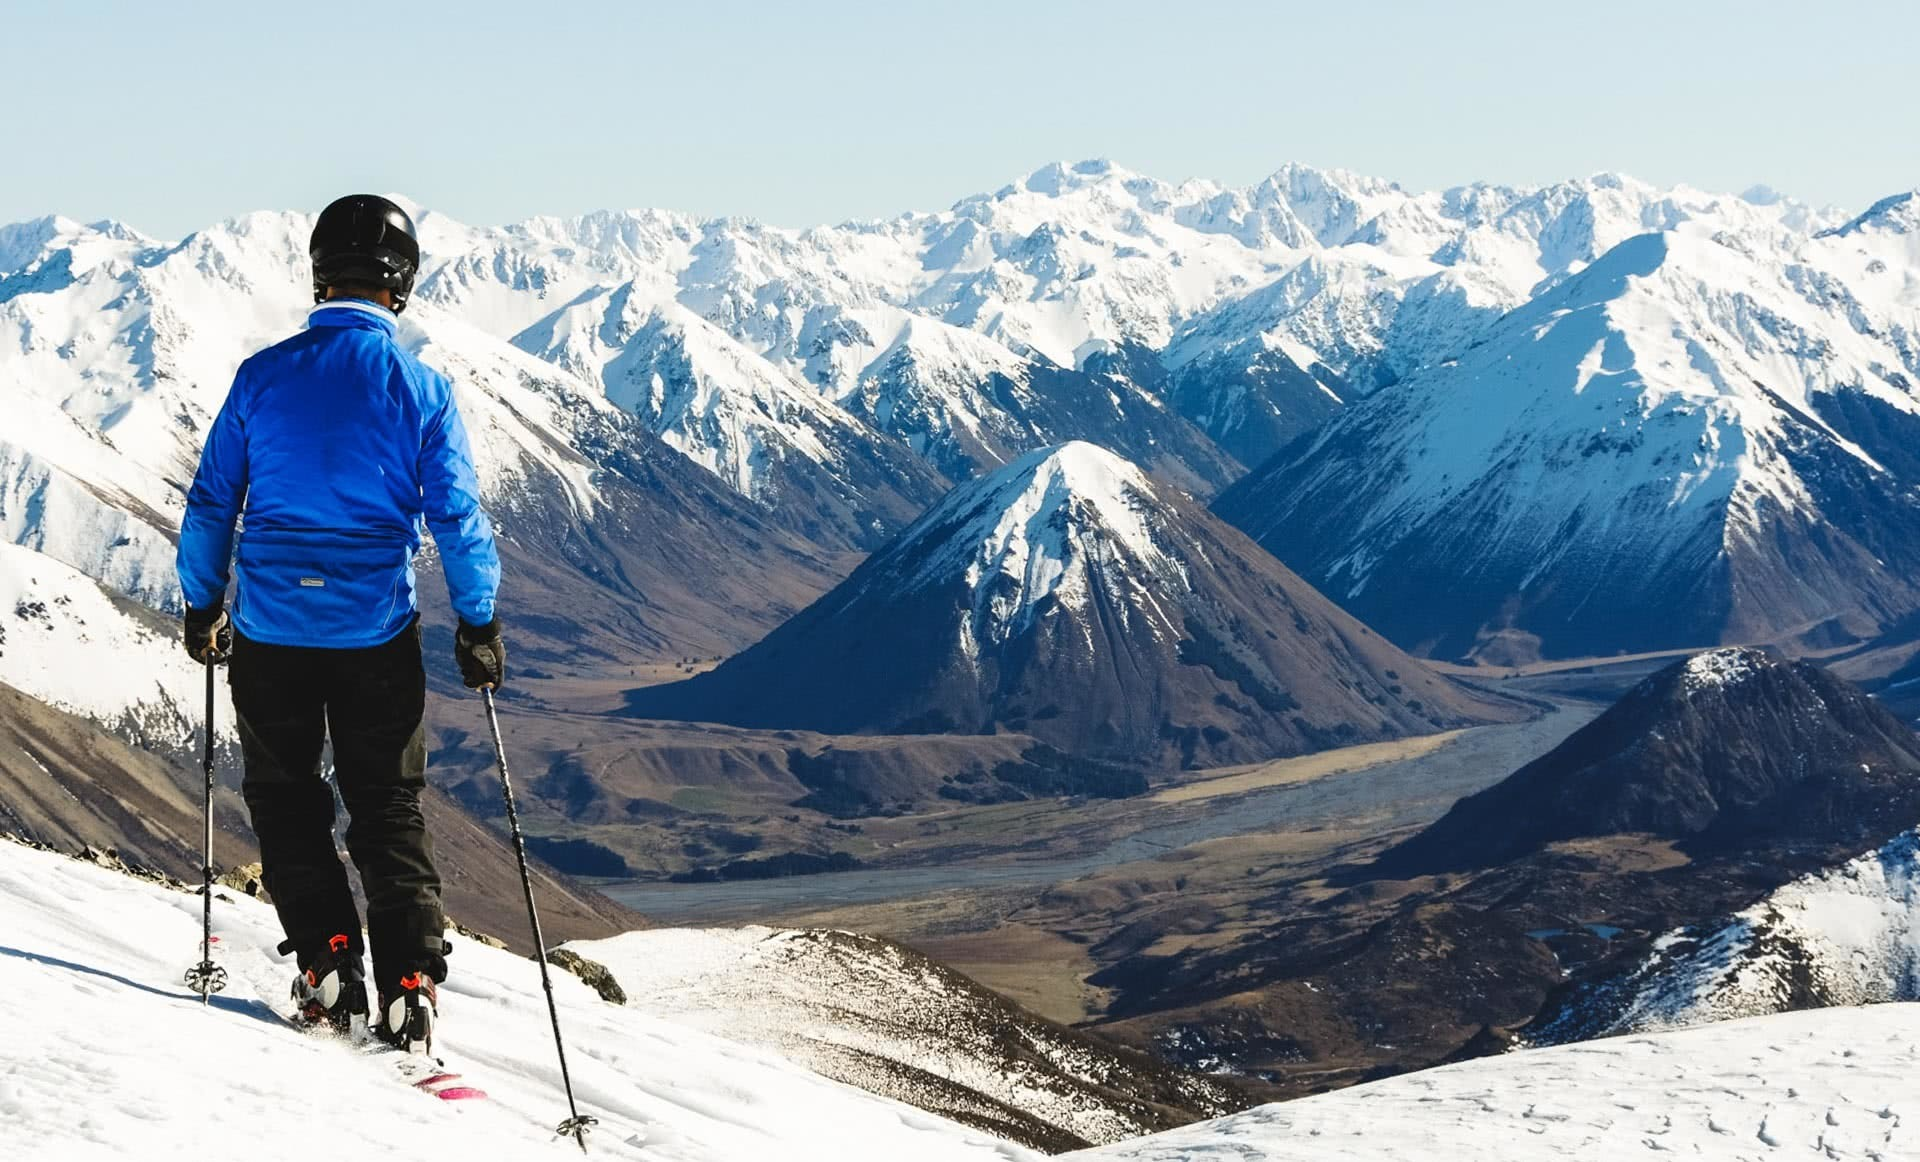 16 Just another Southern Alps view. Off the back at Porters, 21 Laurence climbing up the access walking track to Temple Basin ski area, 24 Incredible Ski Fields & Resorts in New Zealand, Huw Kingston, New Zealand